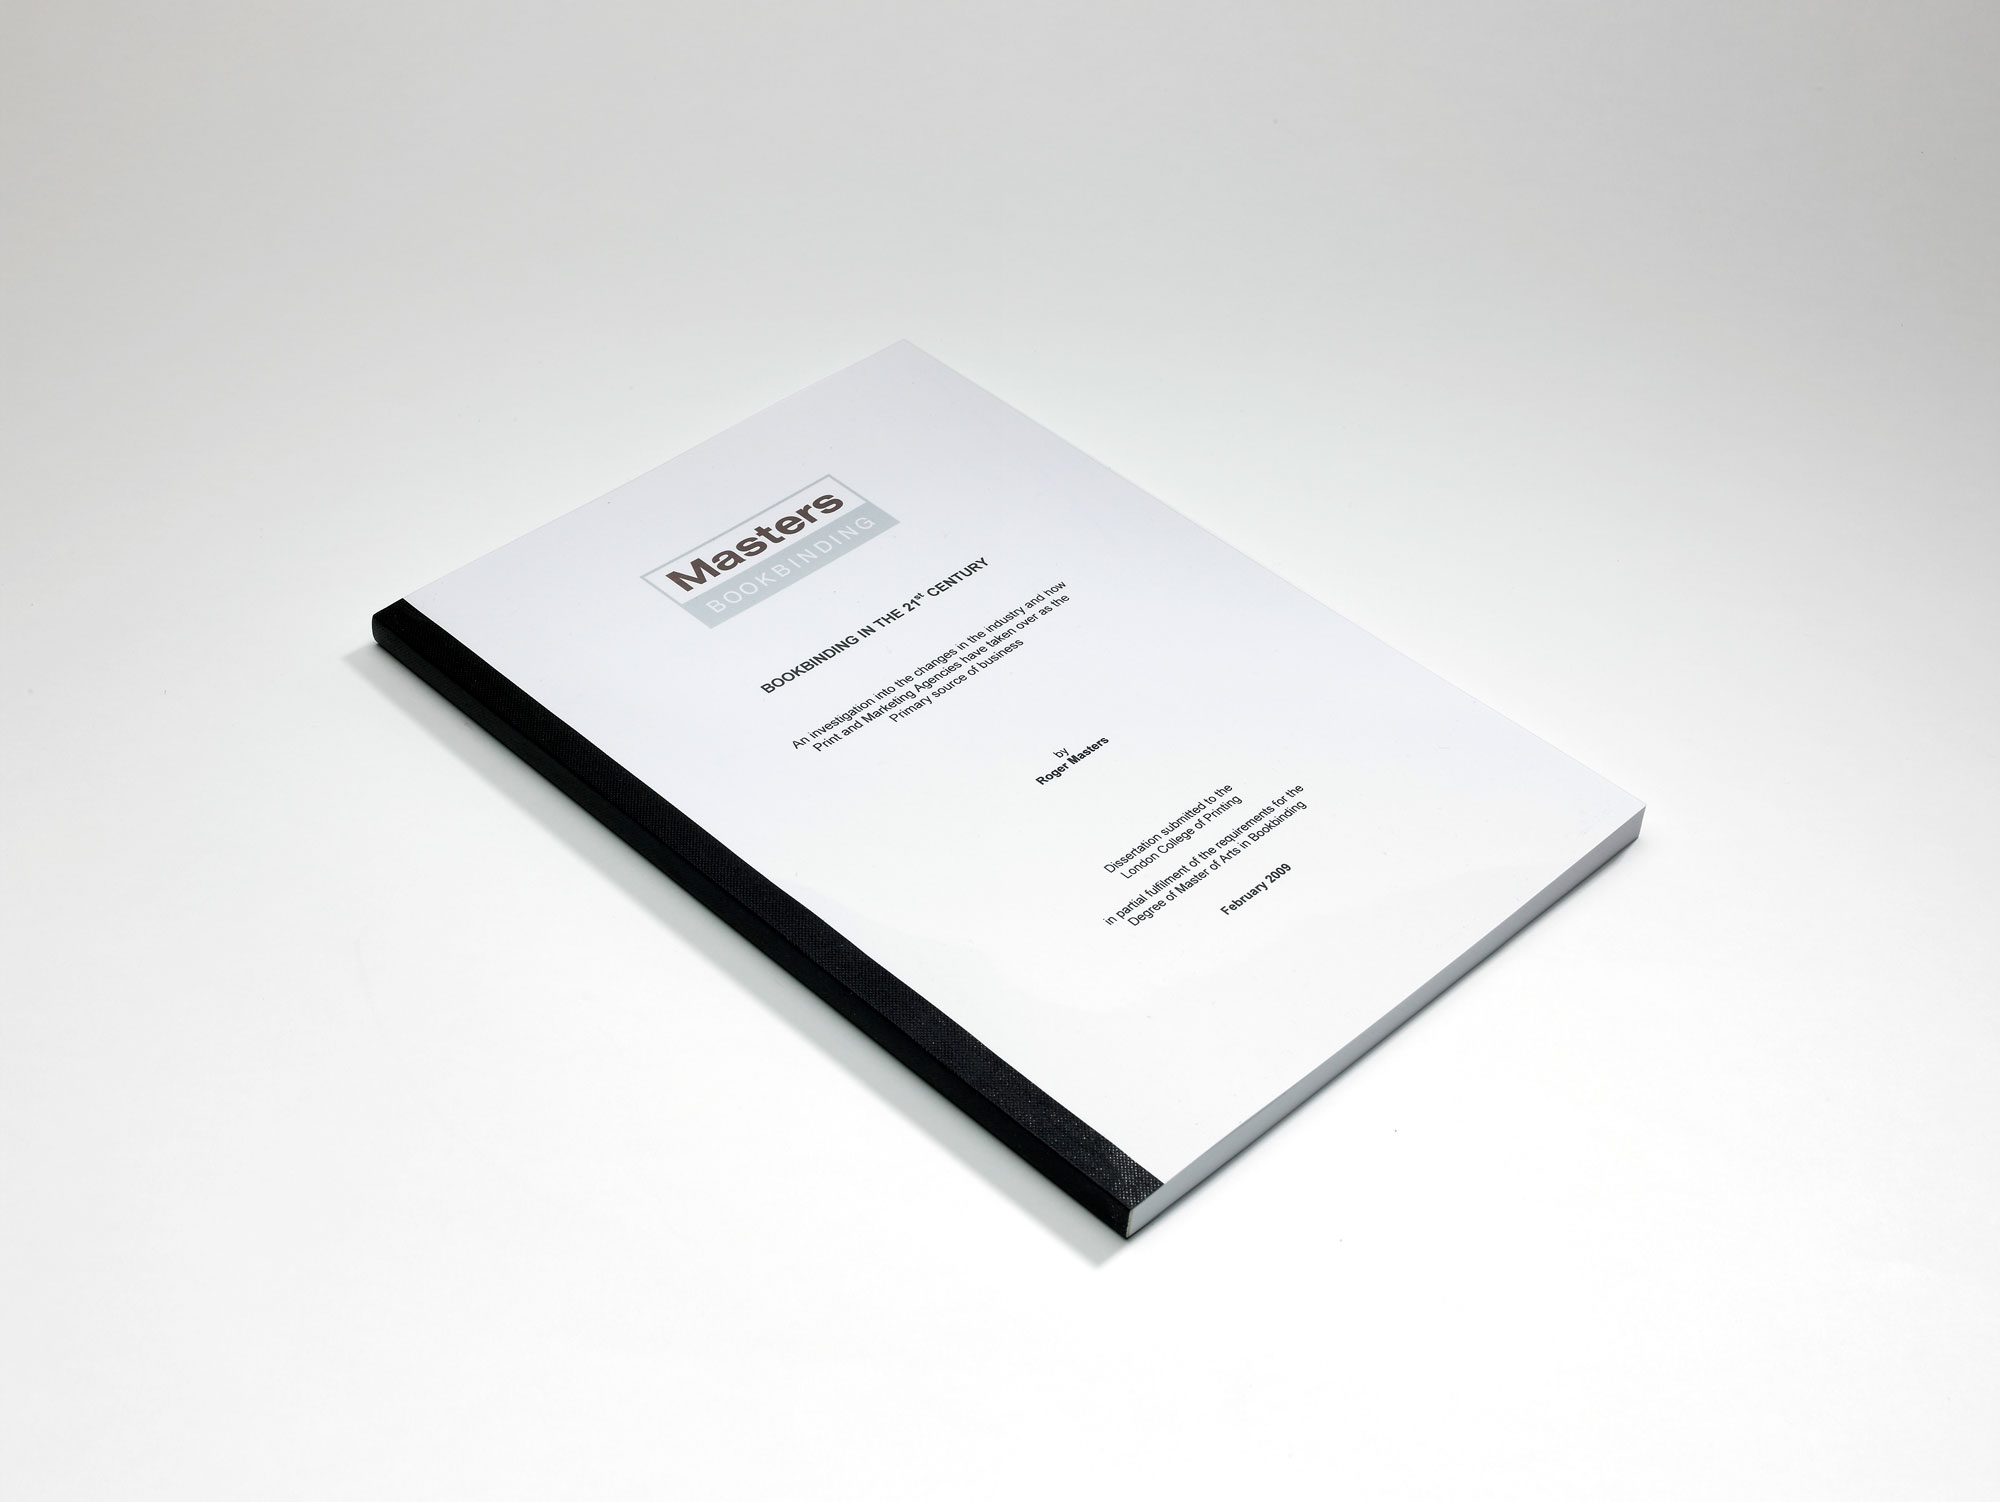 thesis book binding in london At nevex printing centre we offer same day perfect binding /soft cover binding done in store in central london we provide perfect binding service for your already printed documents or printing and perfect binding.